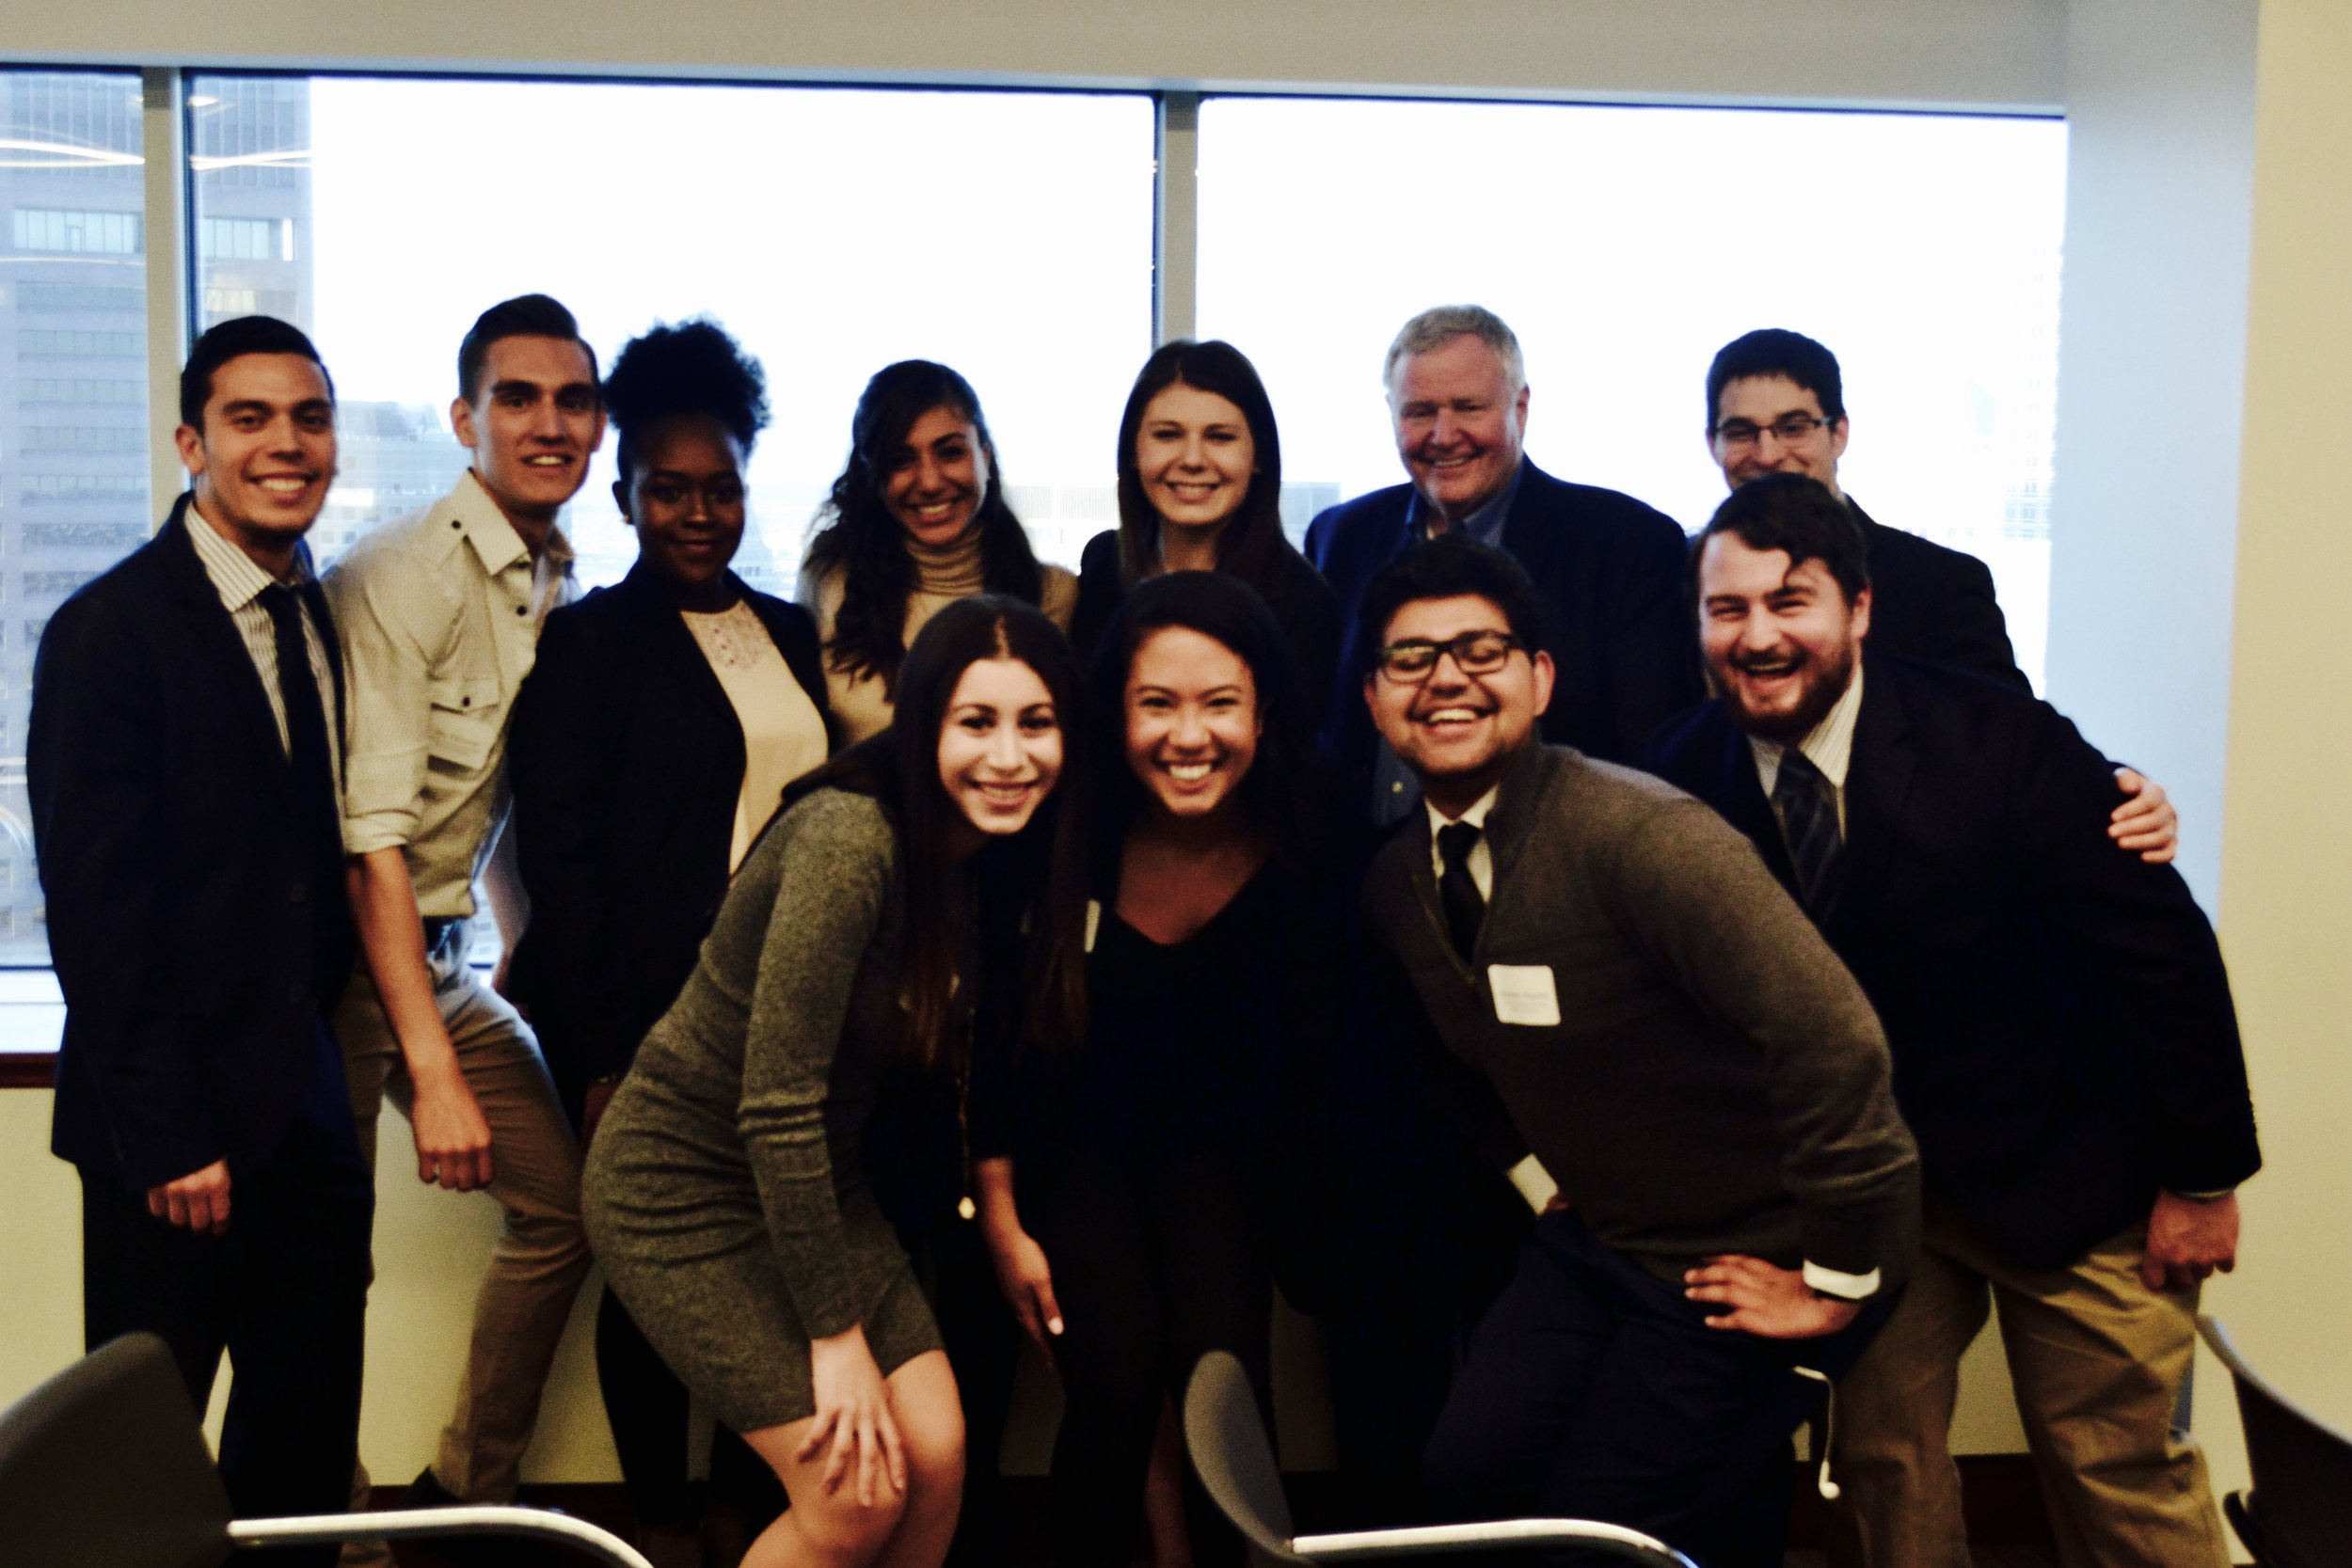 Israel Uncovered alumni from Boston University pose with President of CJP, Barry Shrage